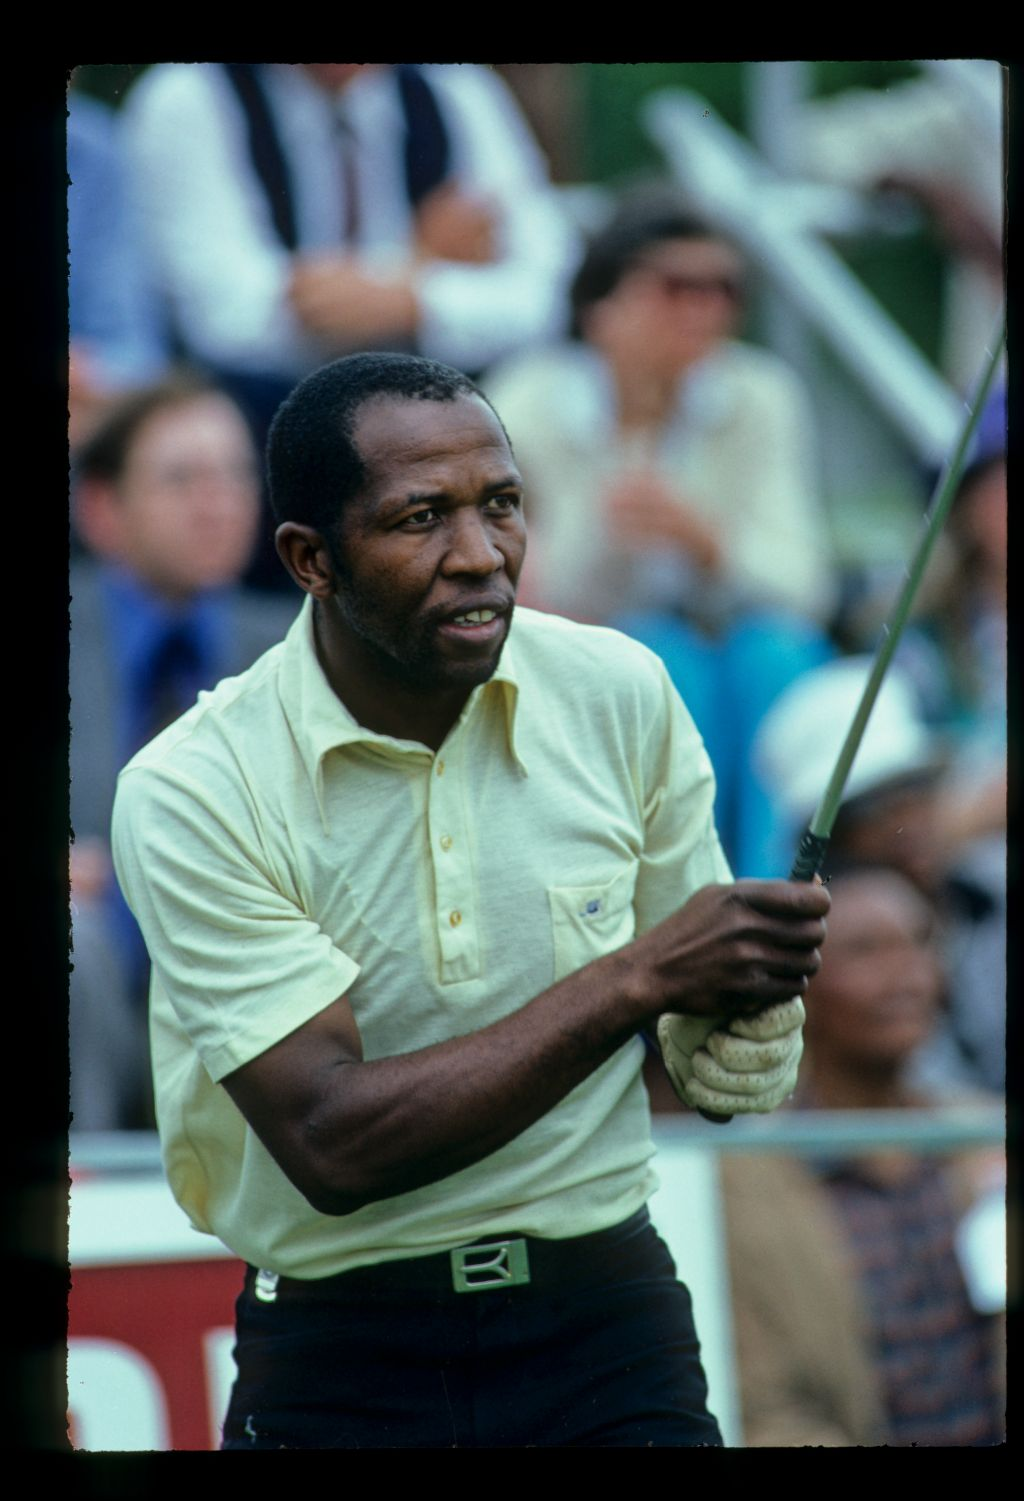 South African golfer Vincent Tshabalala watching anxiously after his drive at the 1980 South African Open